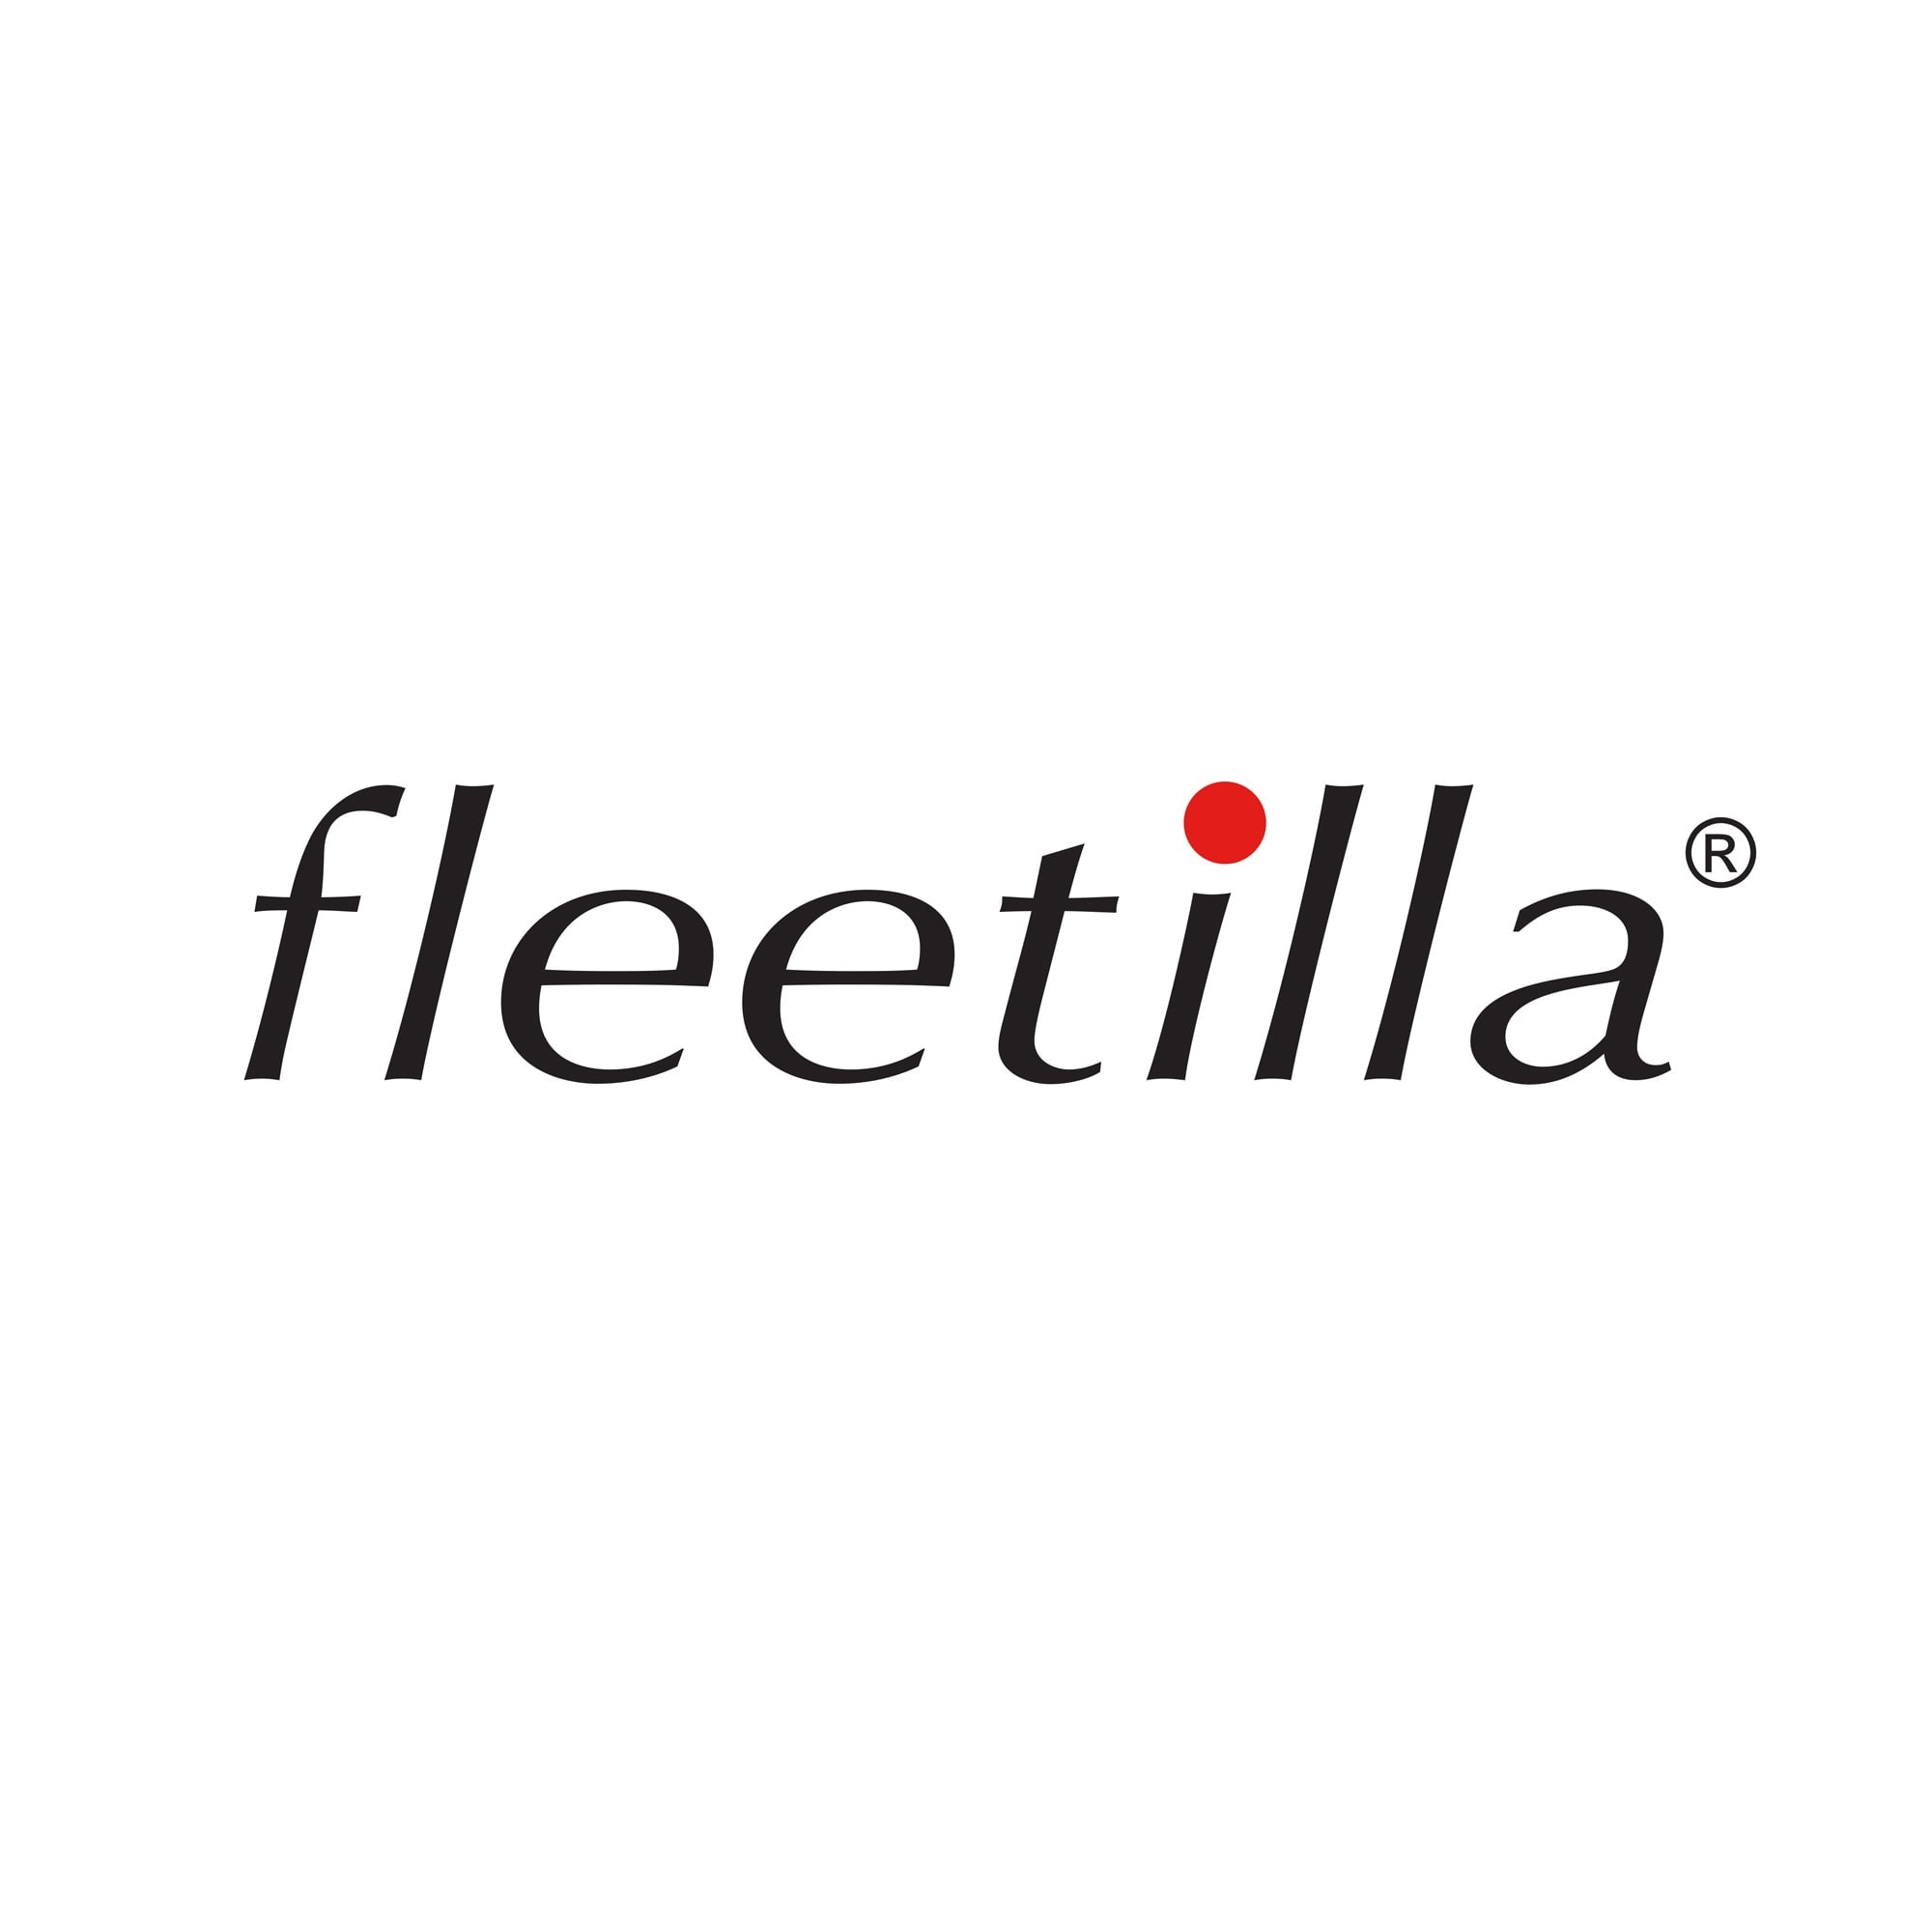 Fleetilla Logo